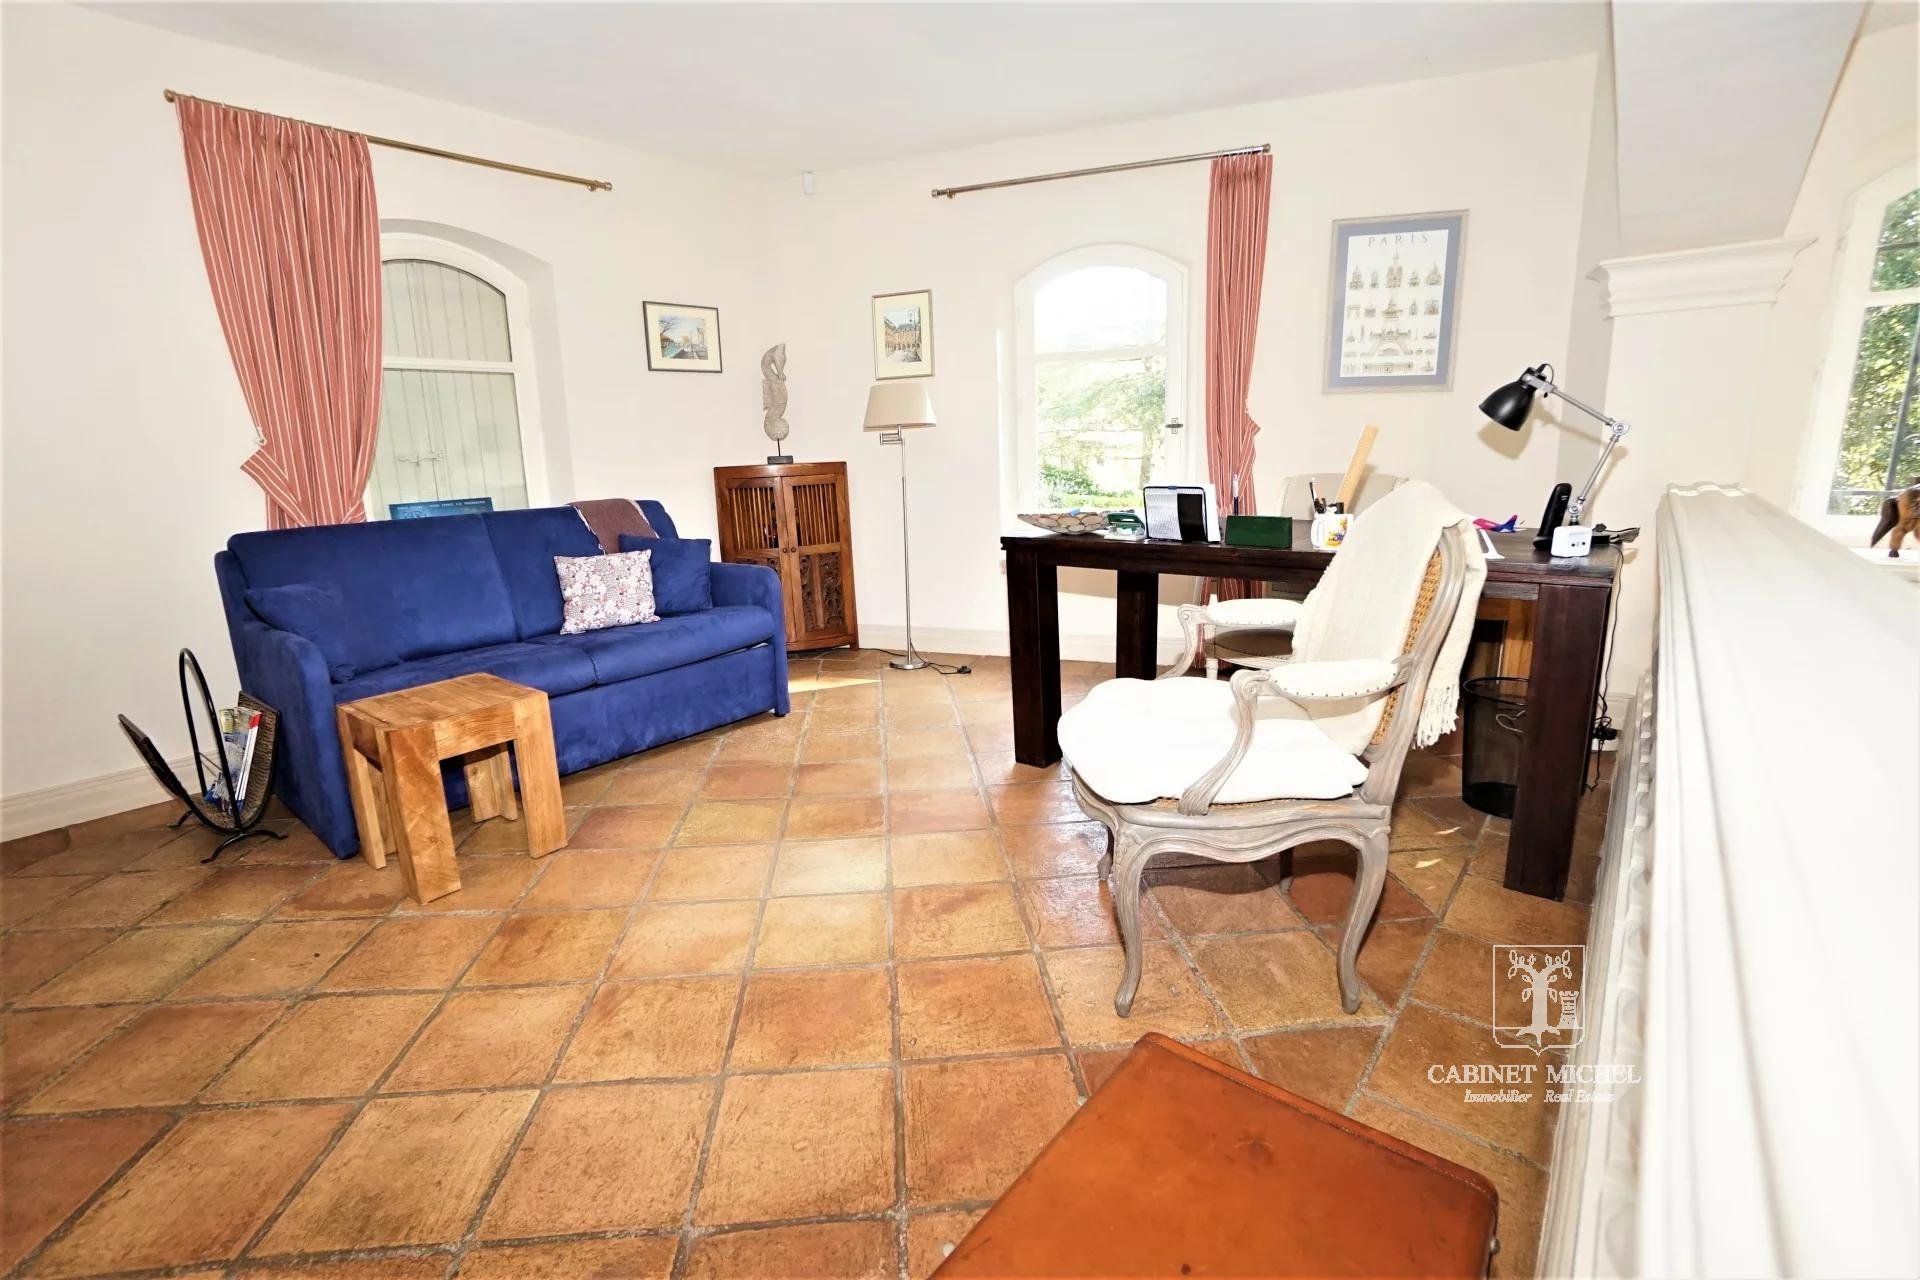 PROPERTY IN ABSOLUTE CALM VILLAGE CENTER ON FOOT